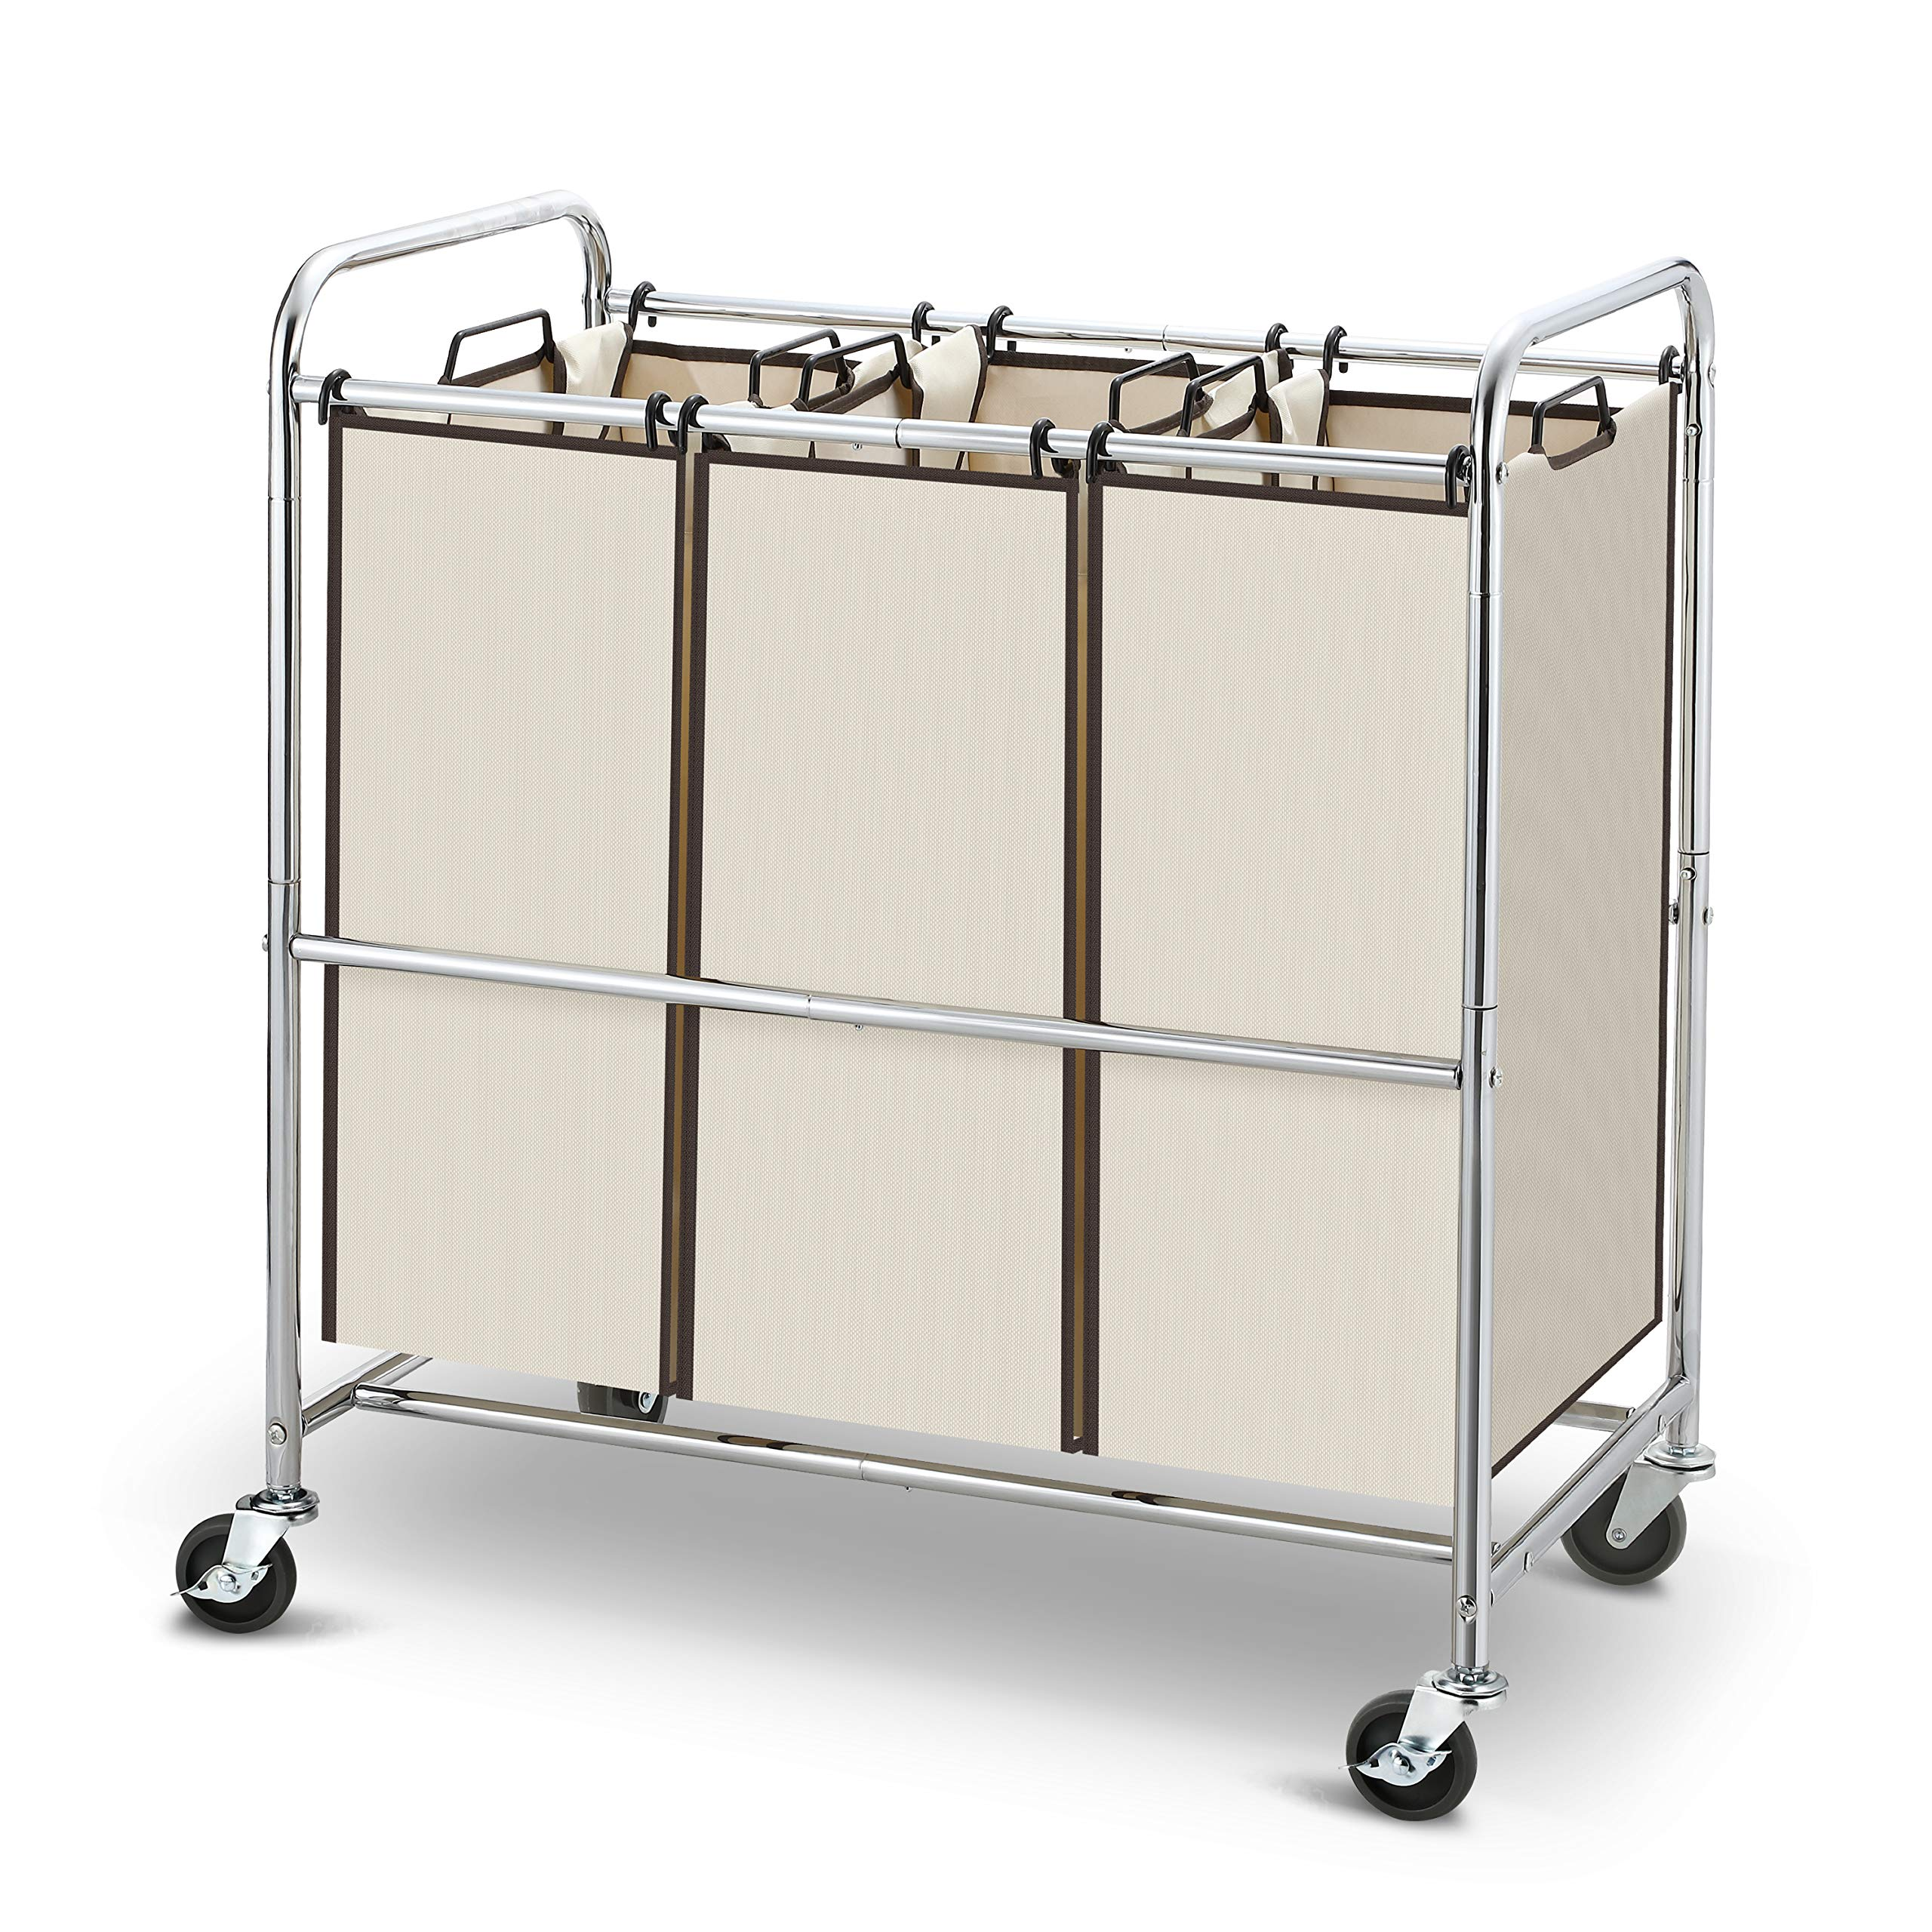 Simple Trending Heavy Duty 3-Bag Laundry Hamper Sorter Cart with Rolling Wheels, Chrome by Simple Trending